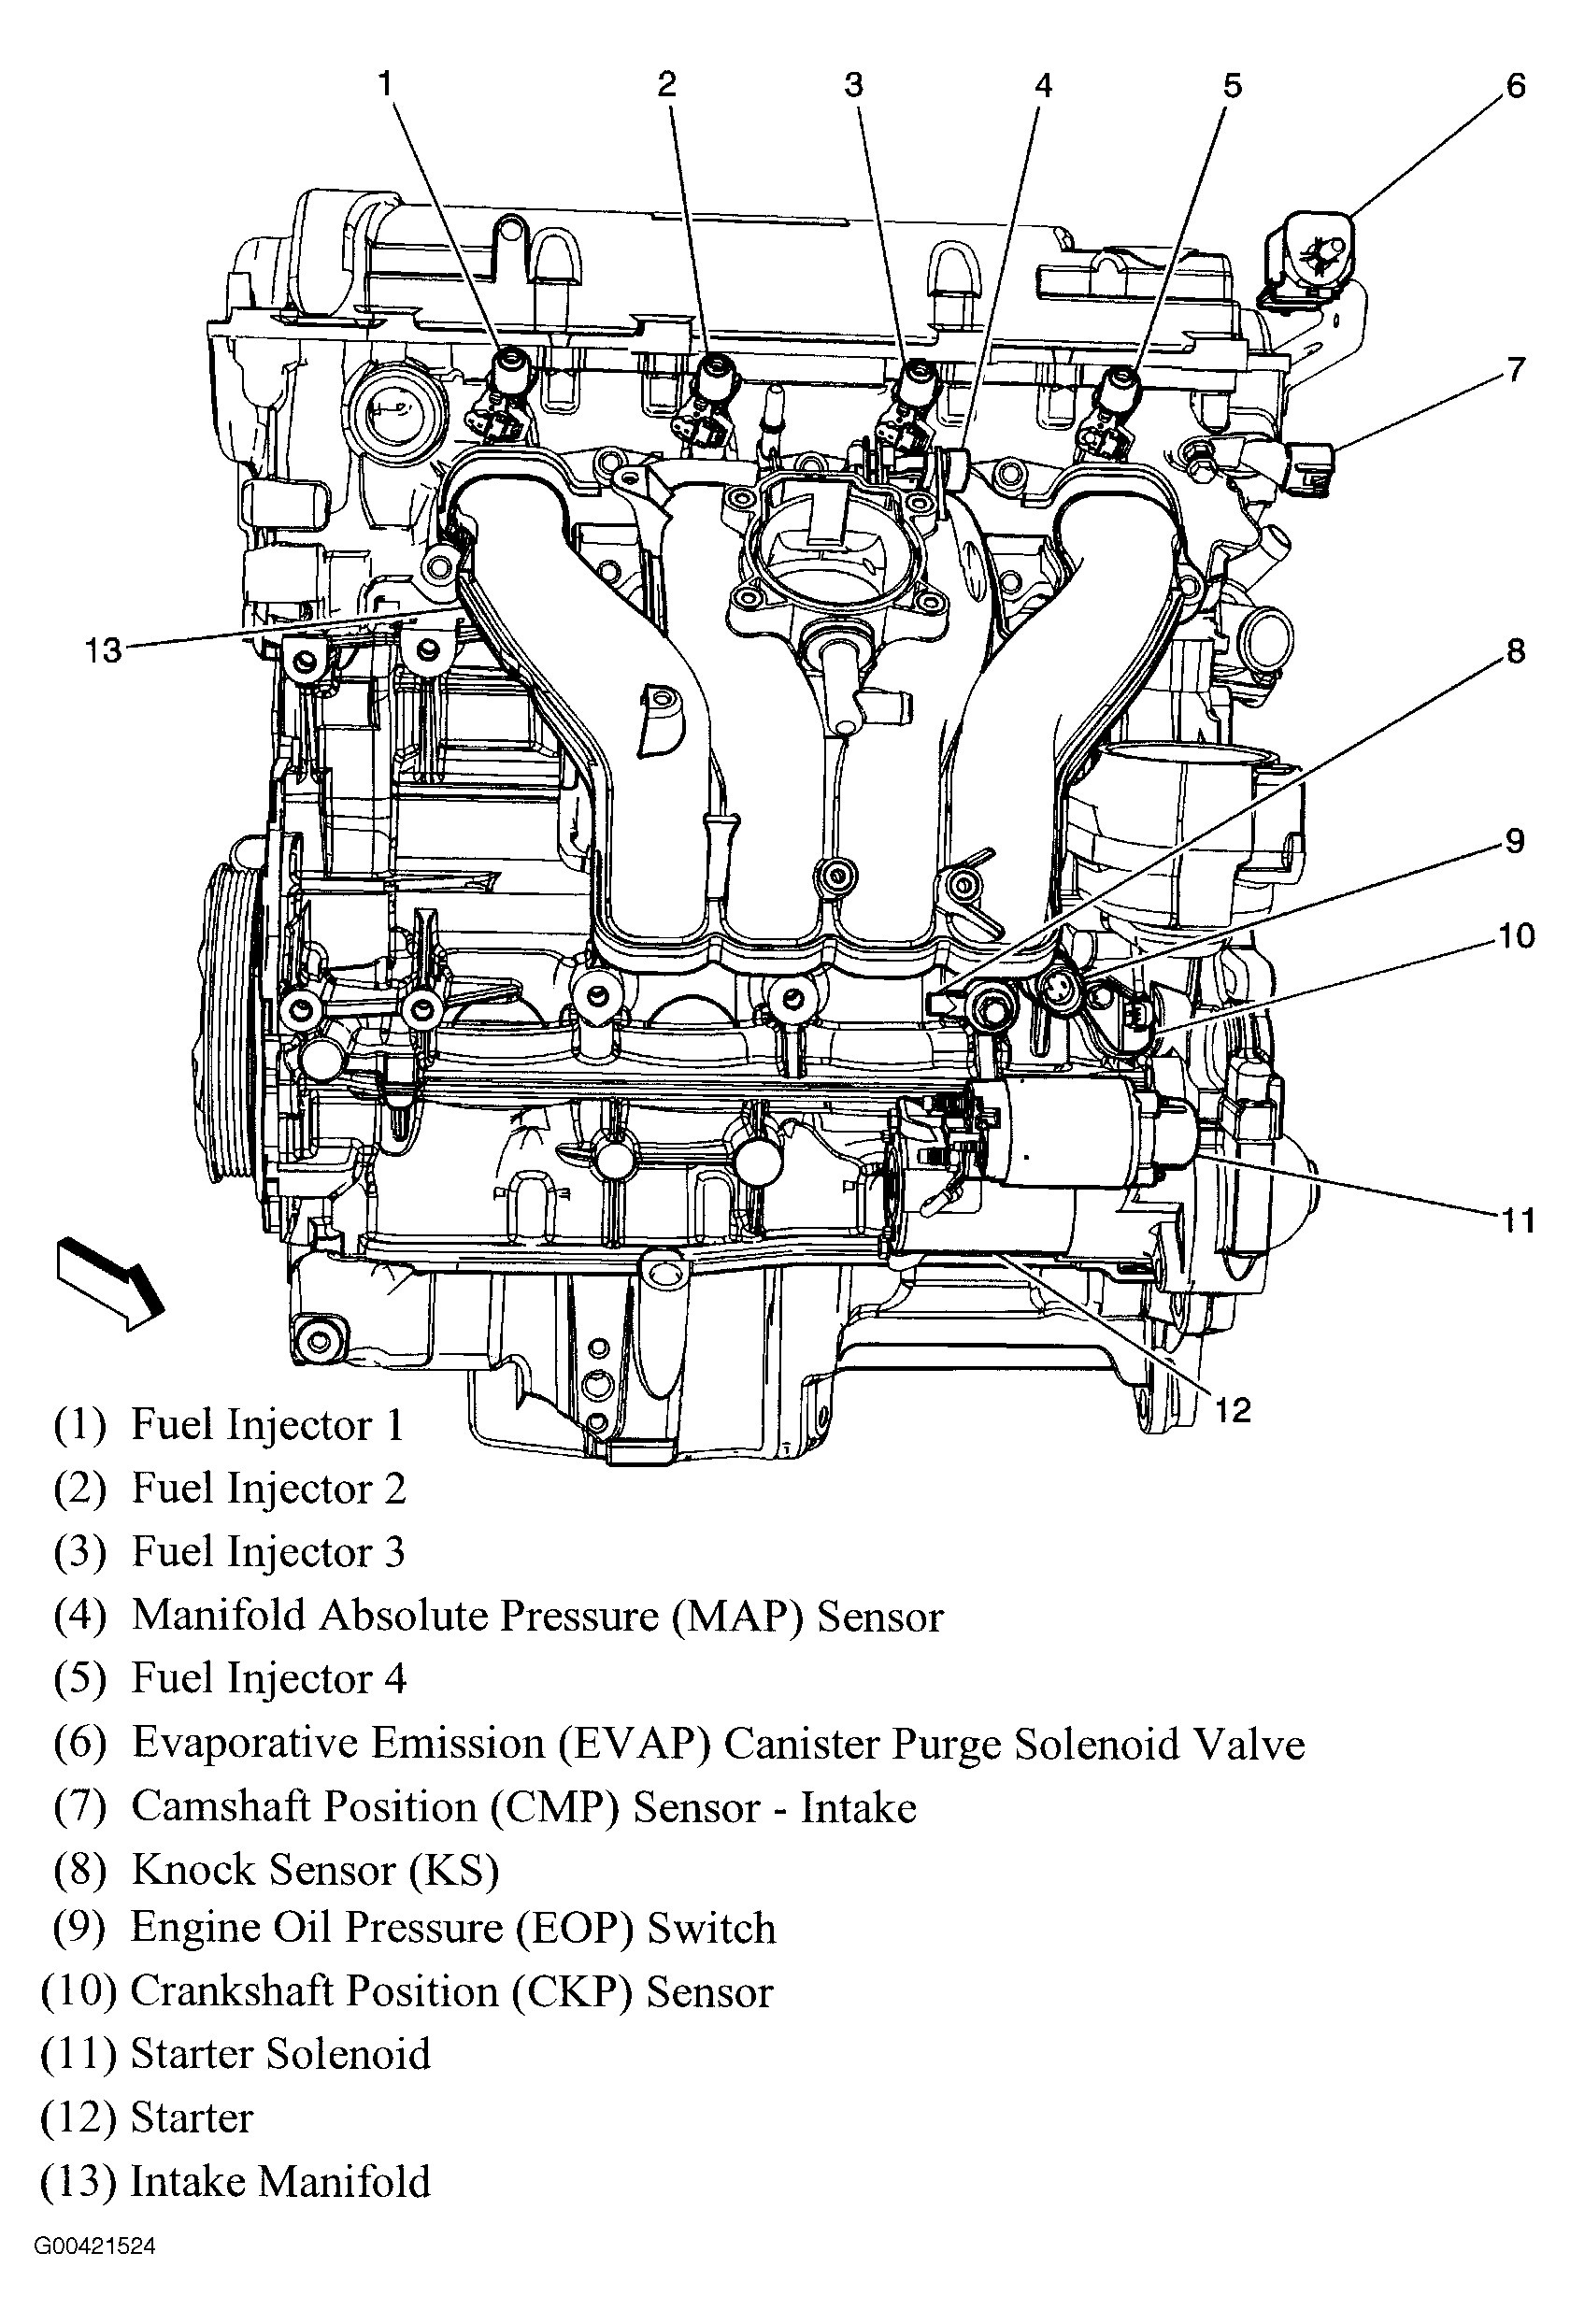 2007 impala engine diagram wiring diagram experts